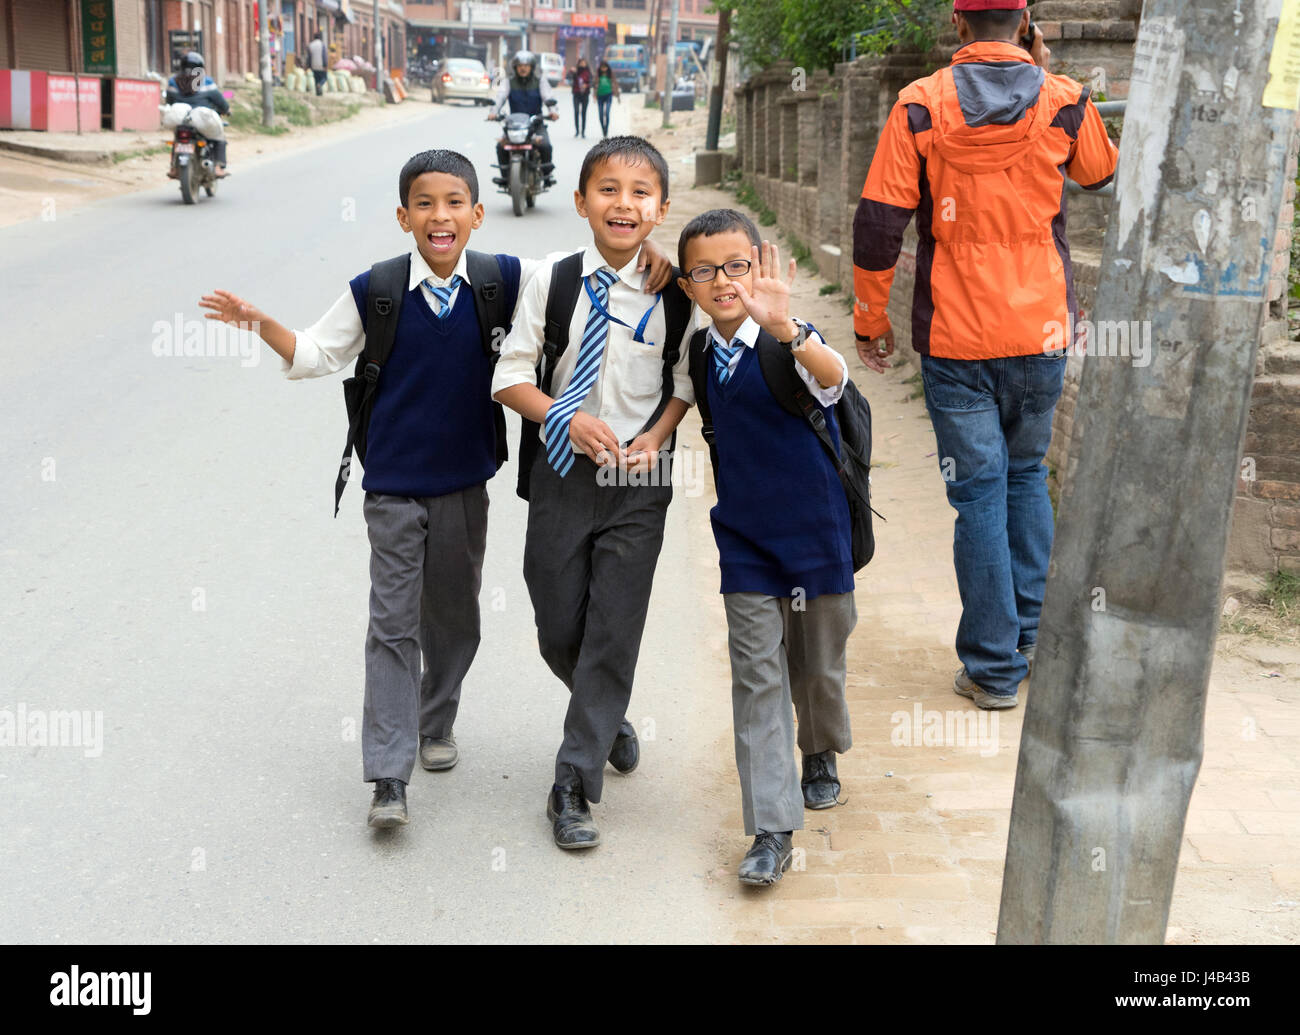 Smiling Nepalese schoolboys in uniforms walking on the street, Bhaktapur. Stock Photo